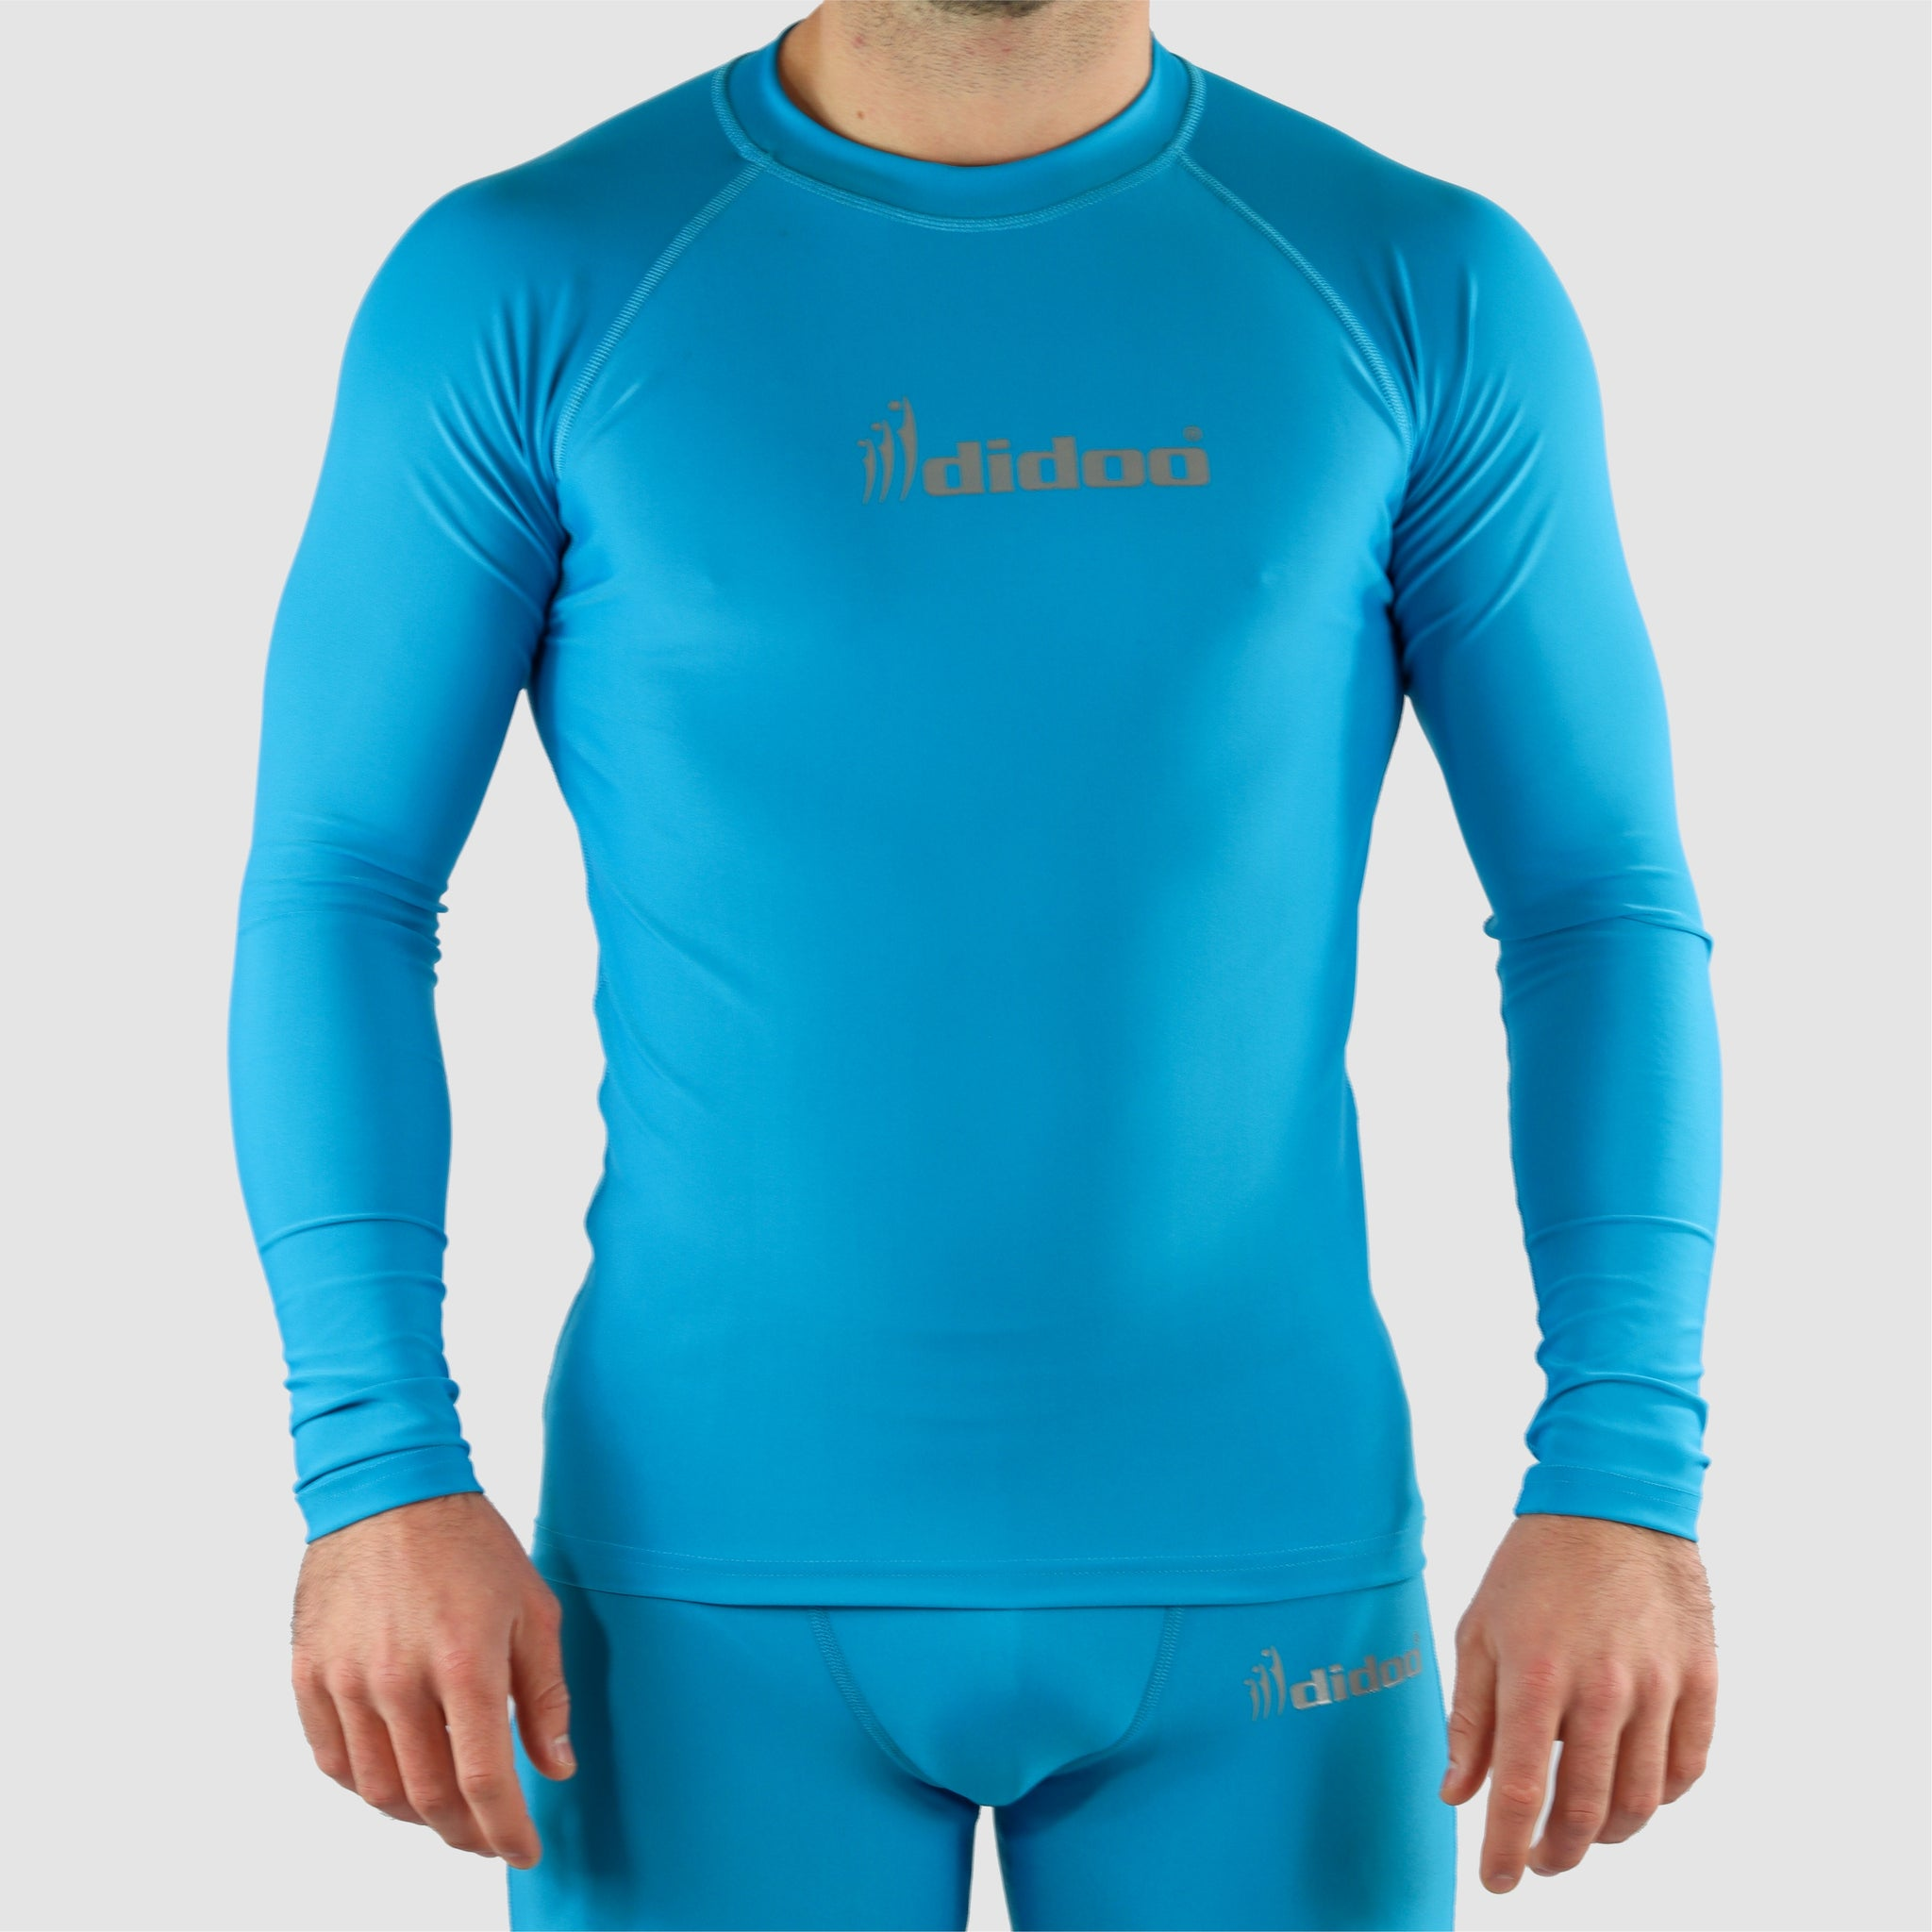 DiDOO Men's Compression Baselayer Top Long Sleeve